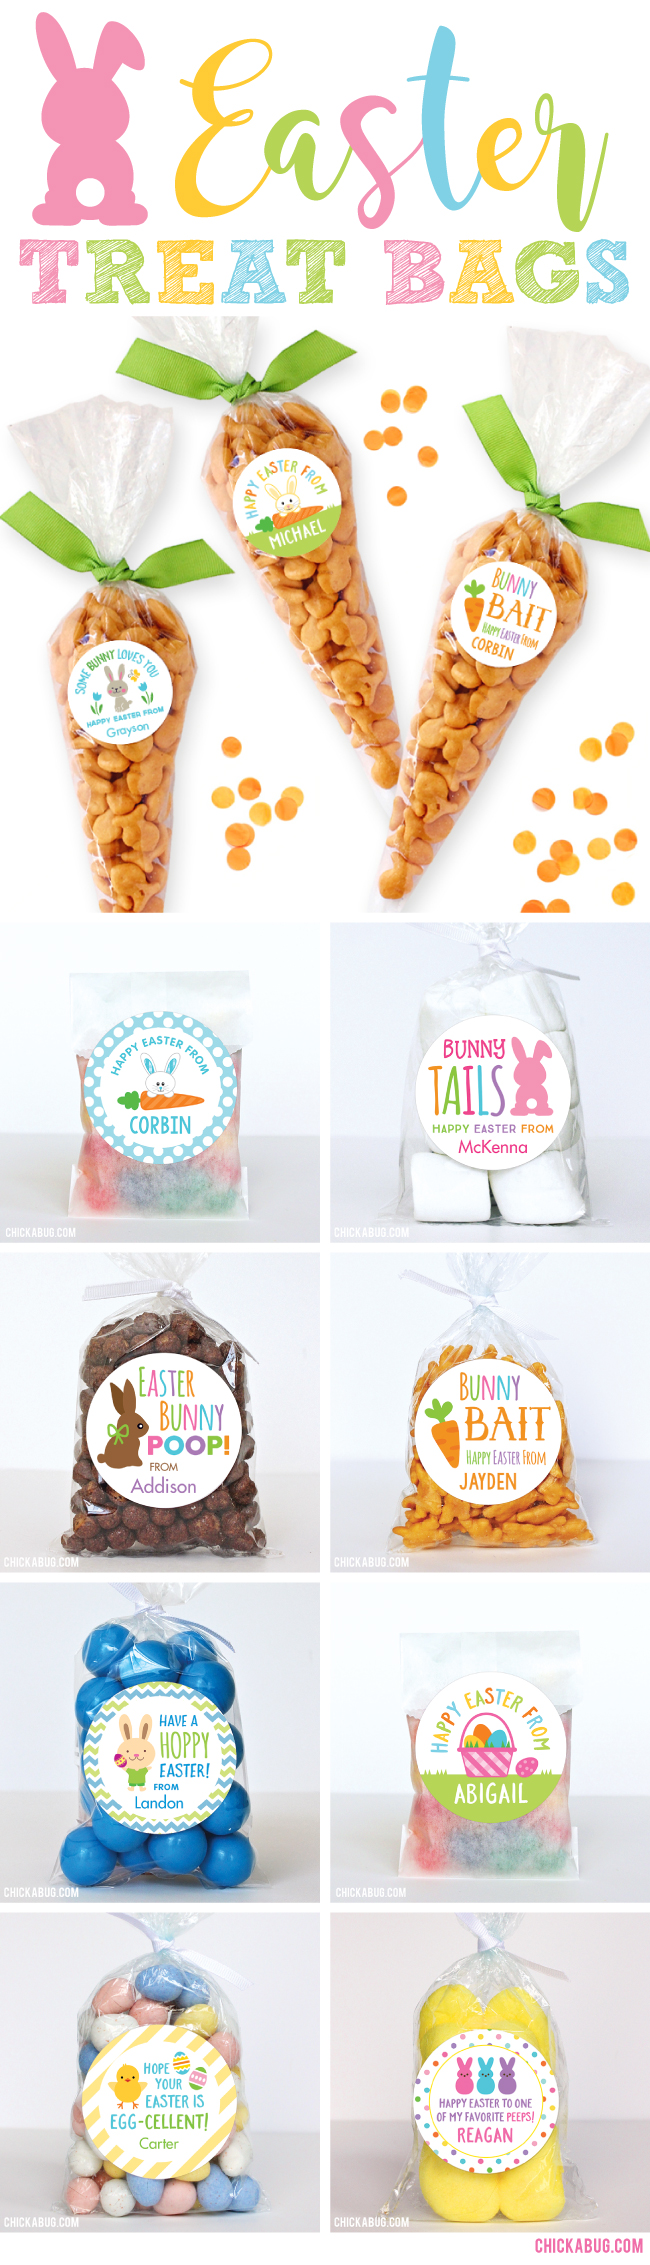 Adorable Easter stickers & treat bags! Get both at www.chickabug.com/easter